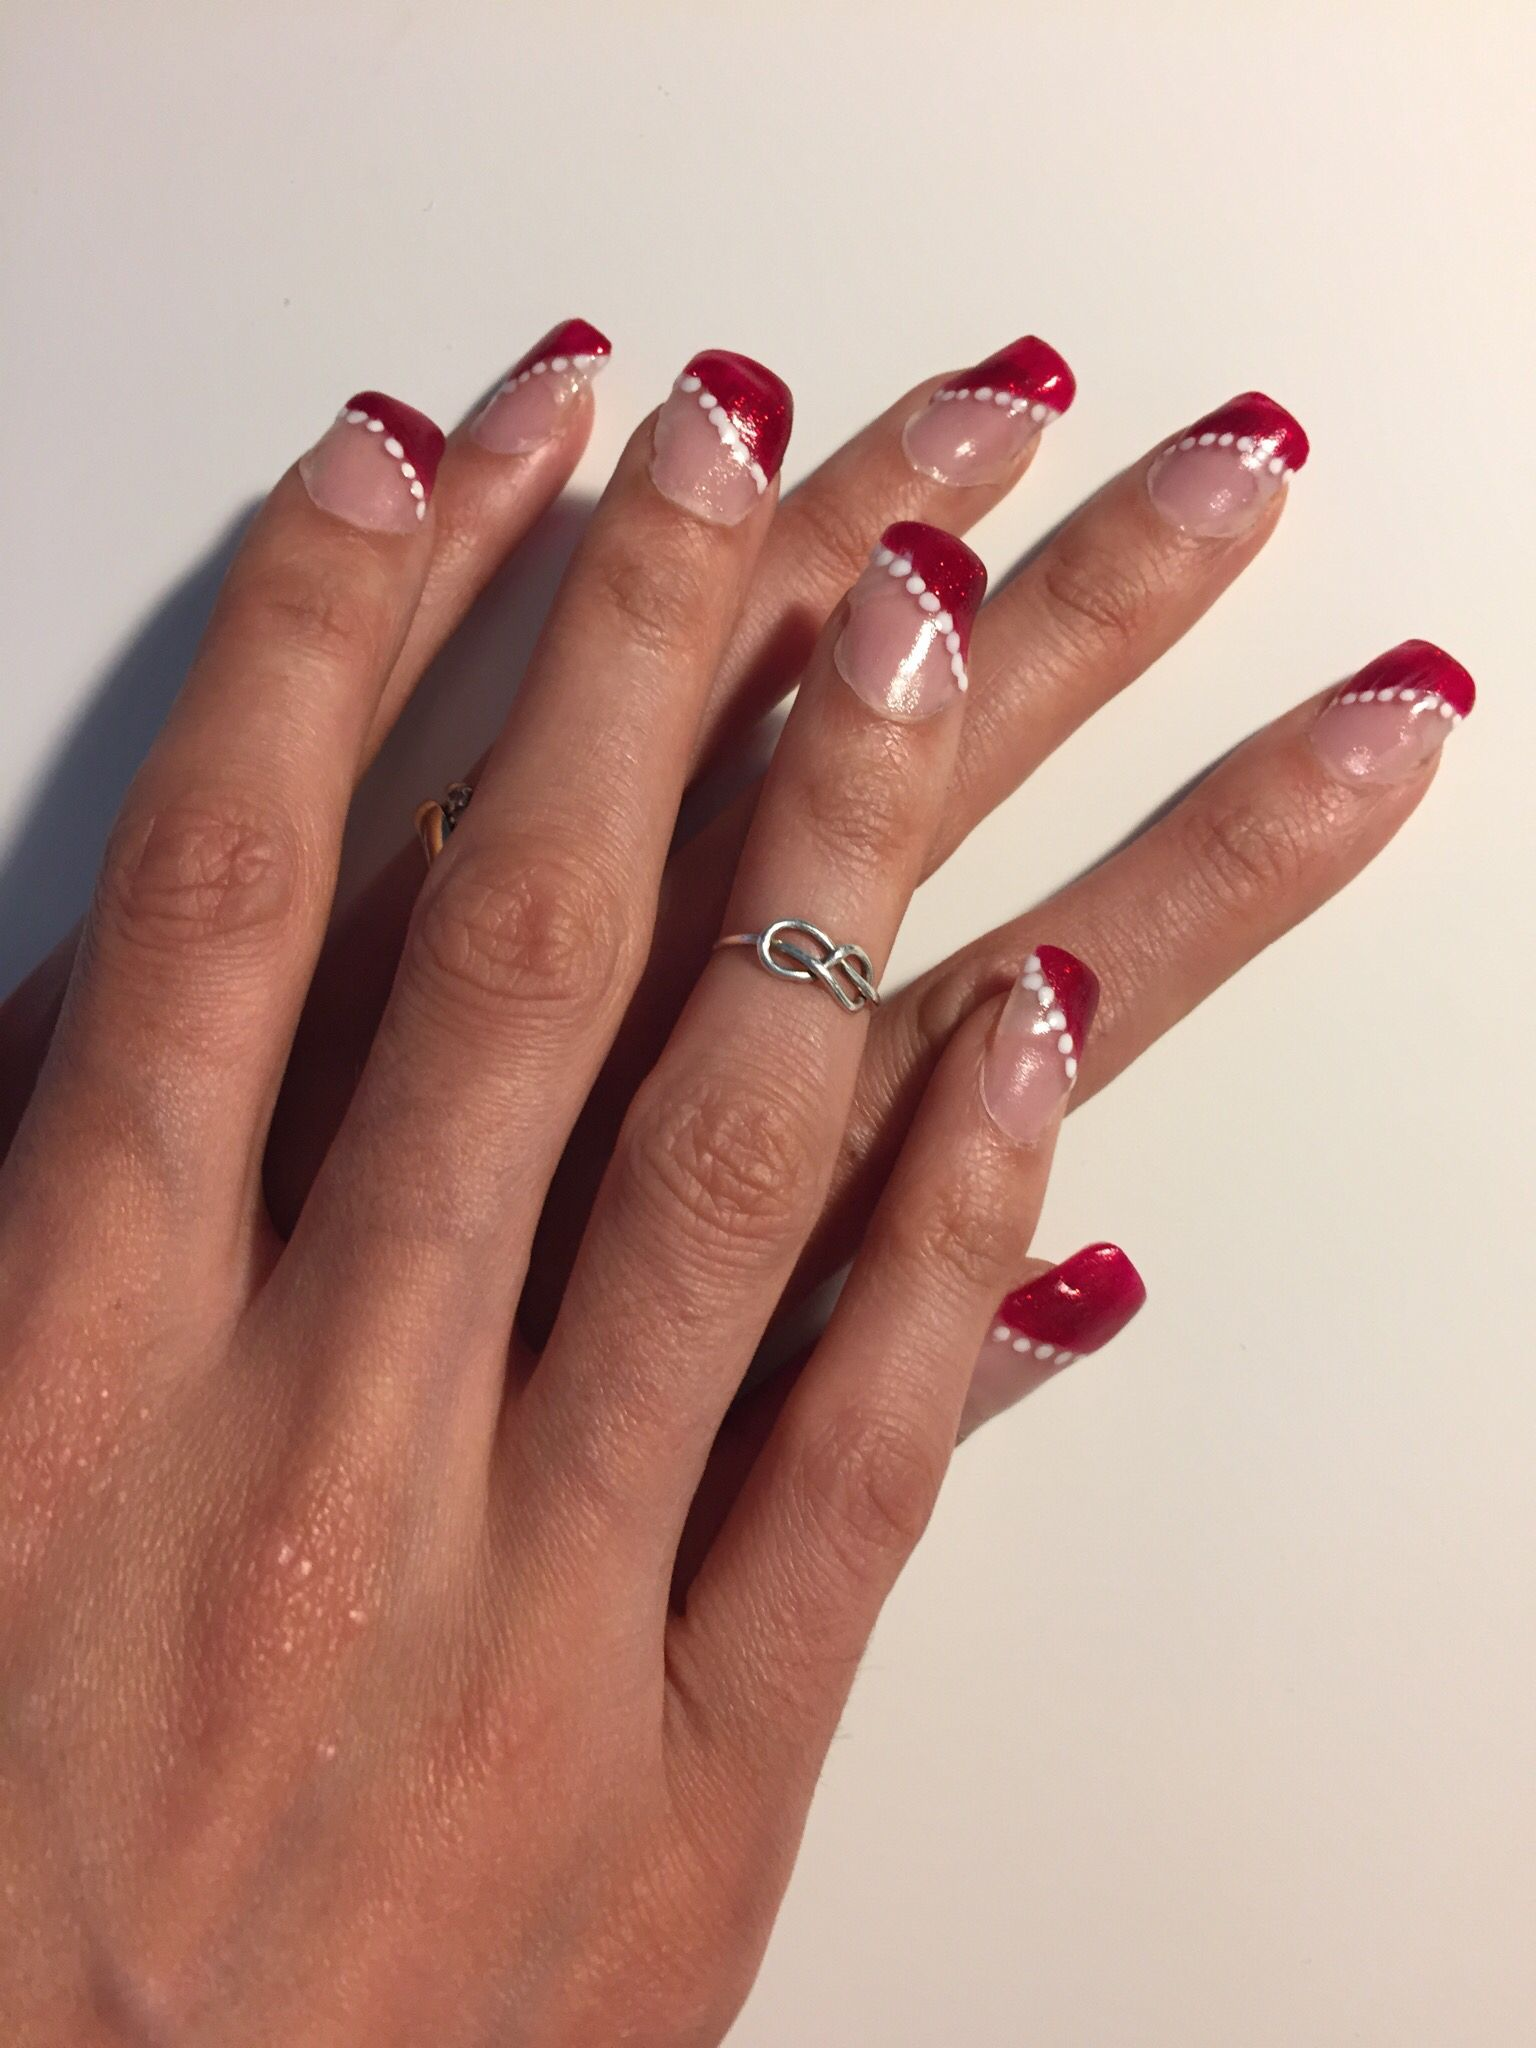 DIY acrylic nails - this was my second attempt at doing acrylic ...